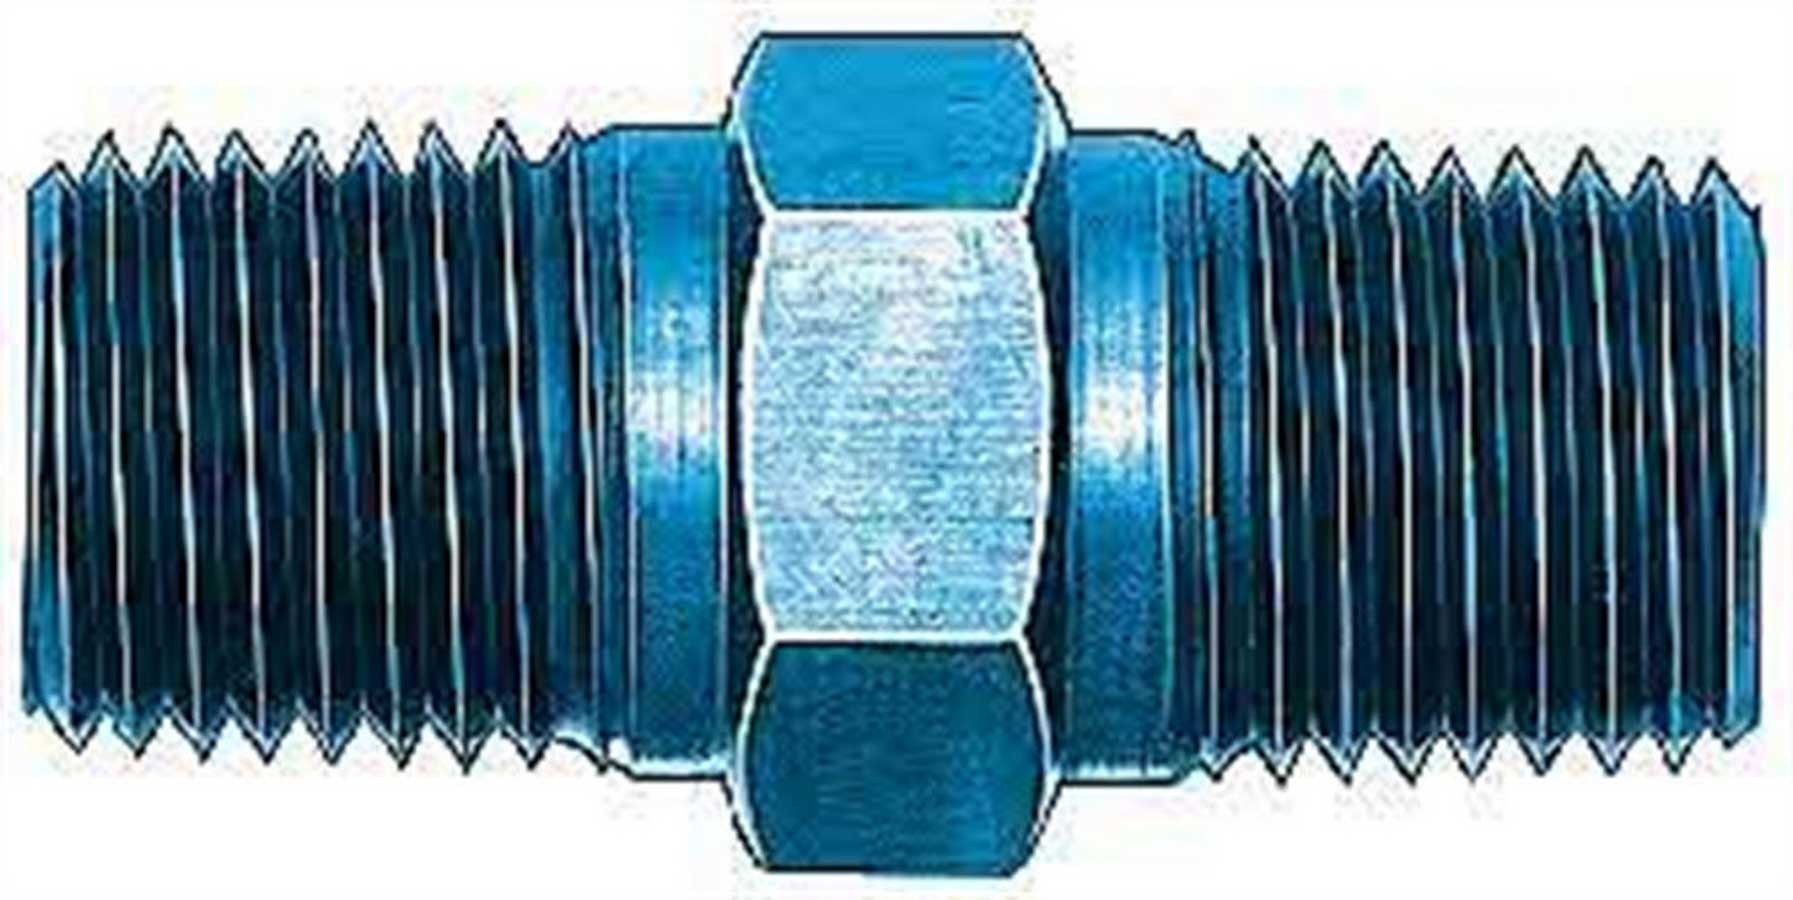 Aeroquip FCM2132 Fitting, Adapter, Straight, 1/8 in NPT Male to 1/8 in NPT Male, Aluminum, Blue Anodize, Each